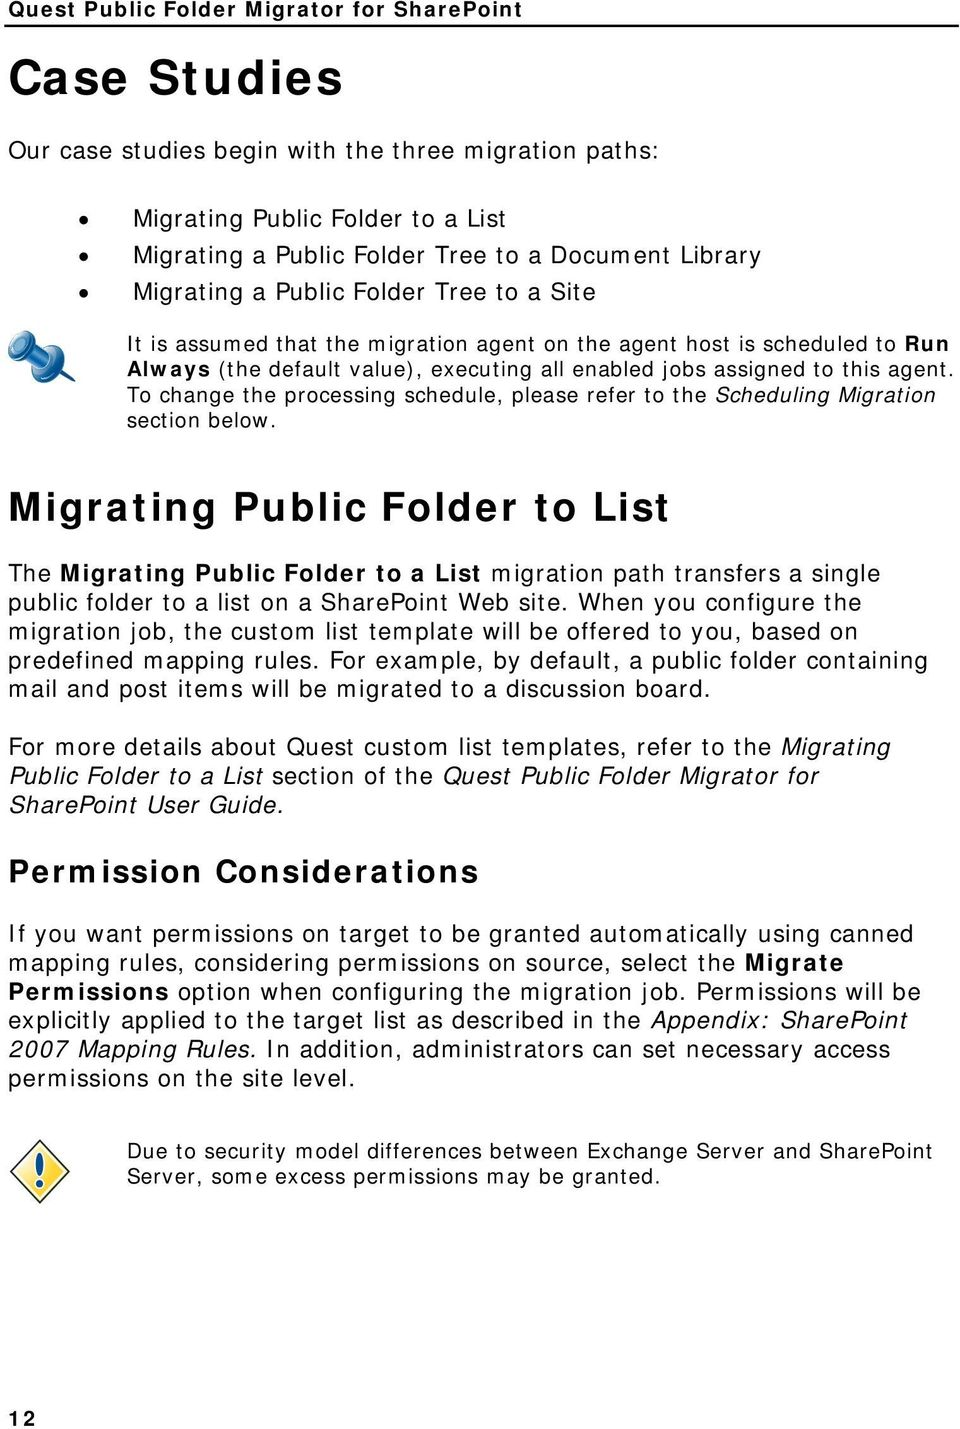 To change the processing schedule, please refer to the Scheduling Migration section below.